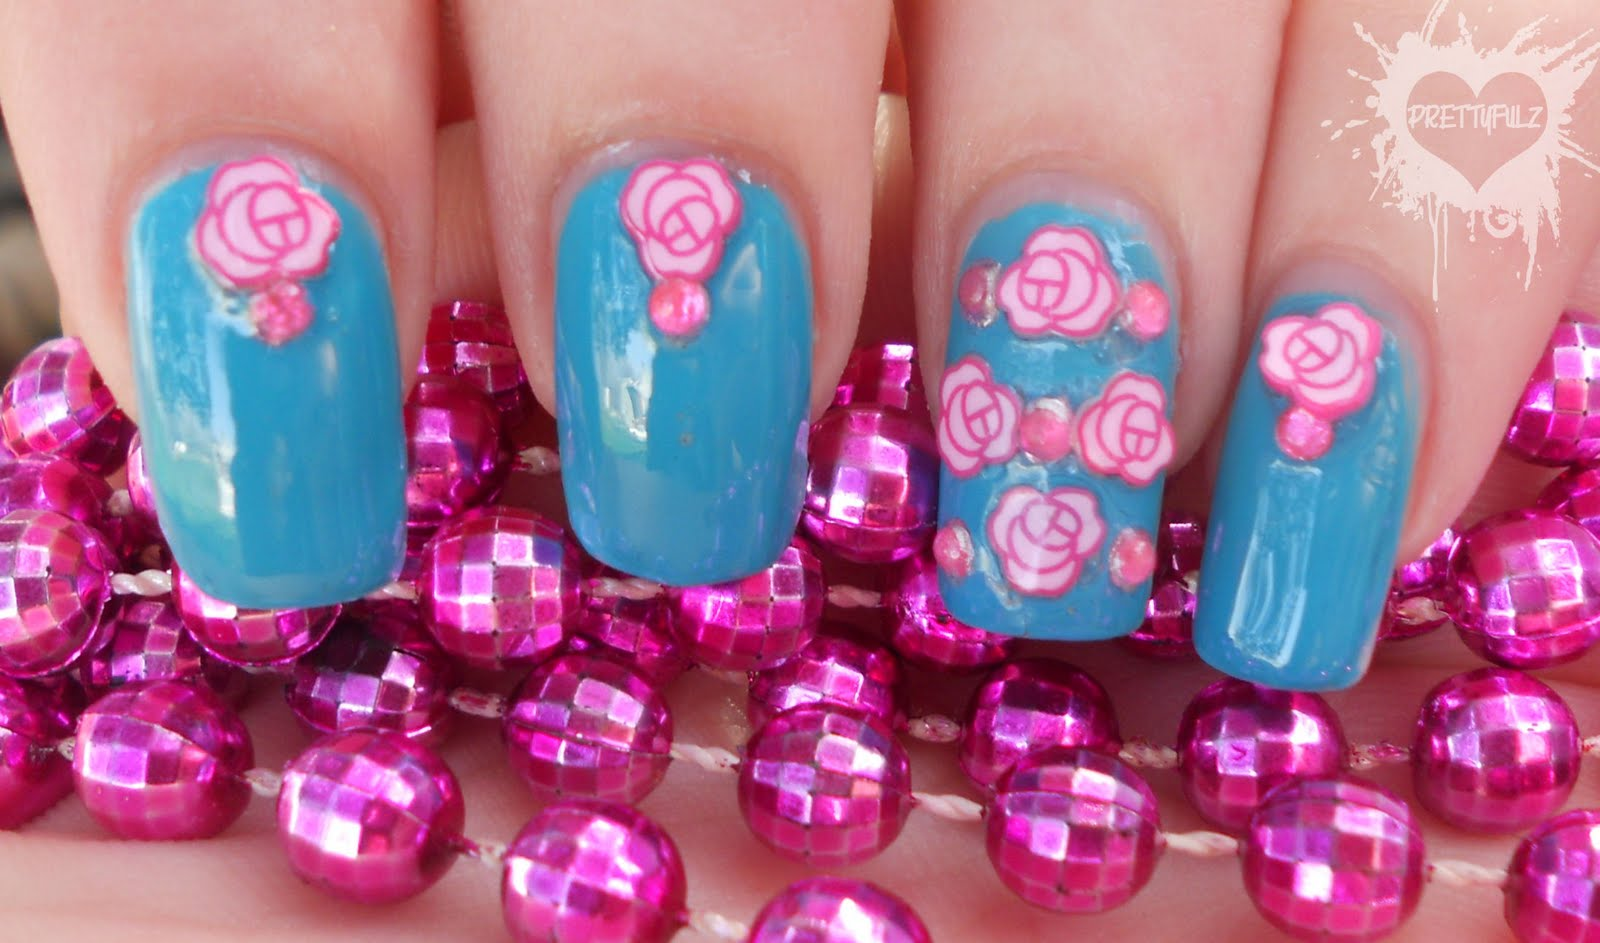 Prettyfulz Pretty Pink Teal Flower Nail Art Design